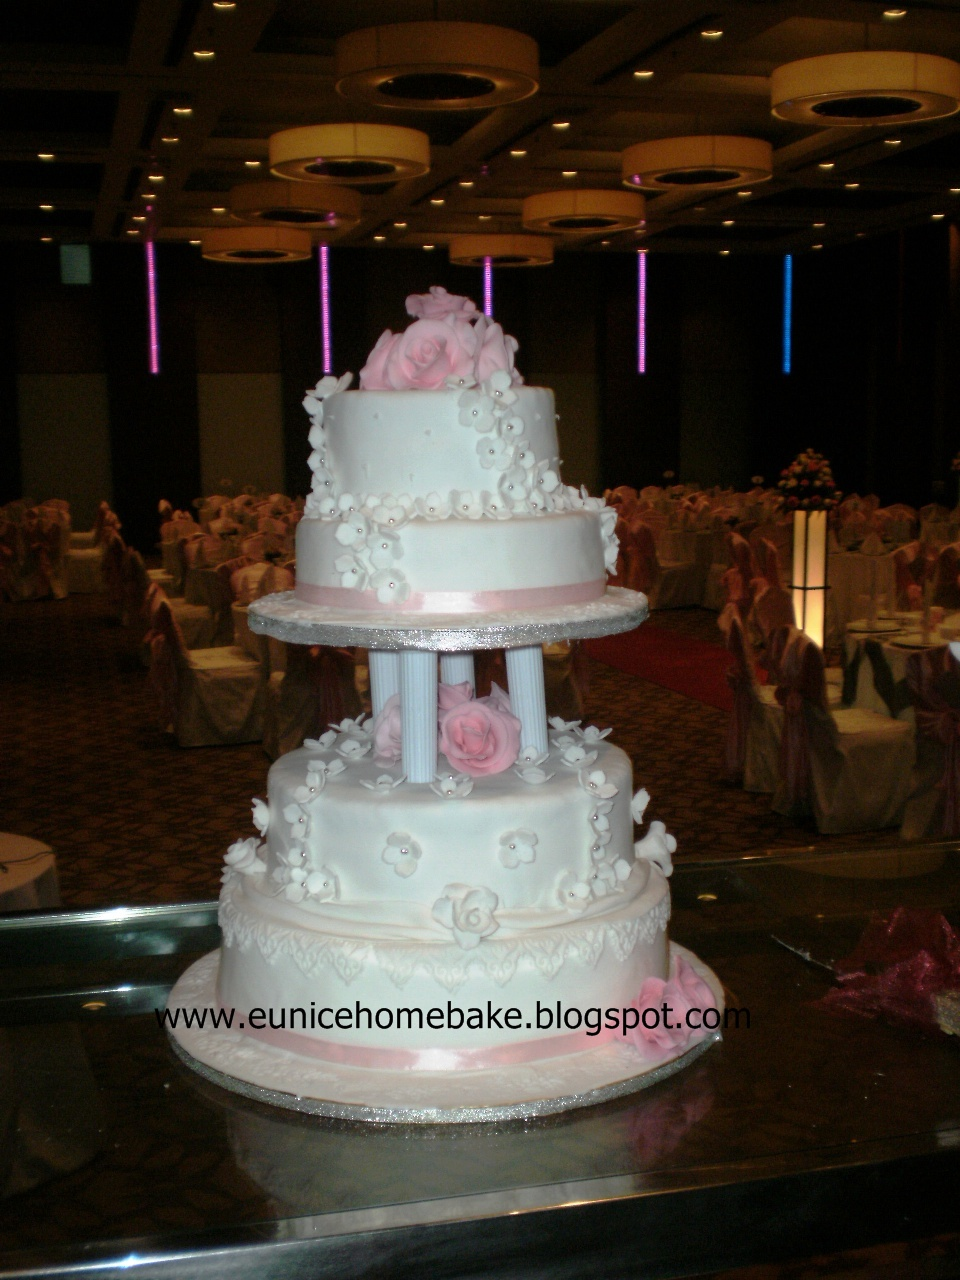 home baked wedding cakes eunice home bake klang 4 tiers wedding cake adam 15276